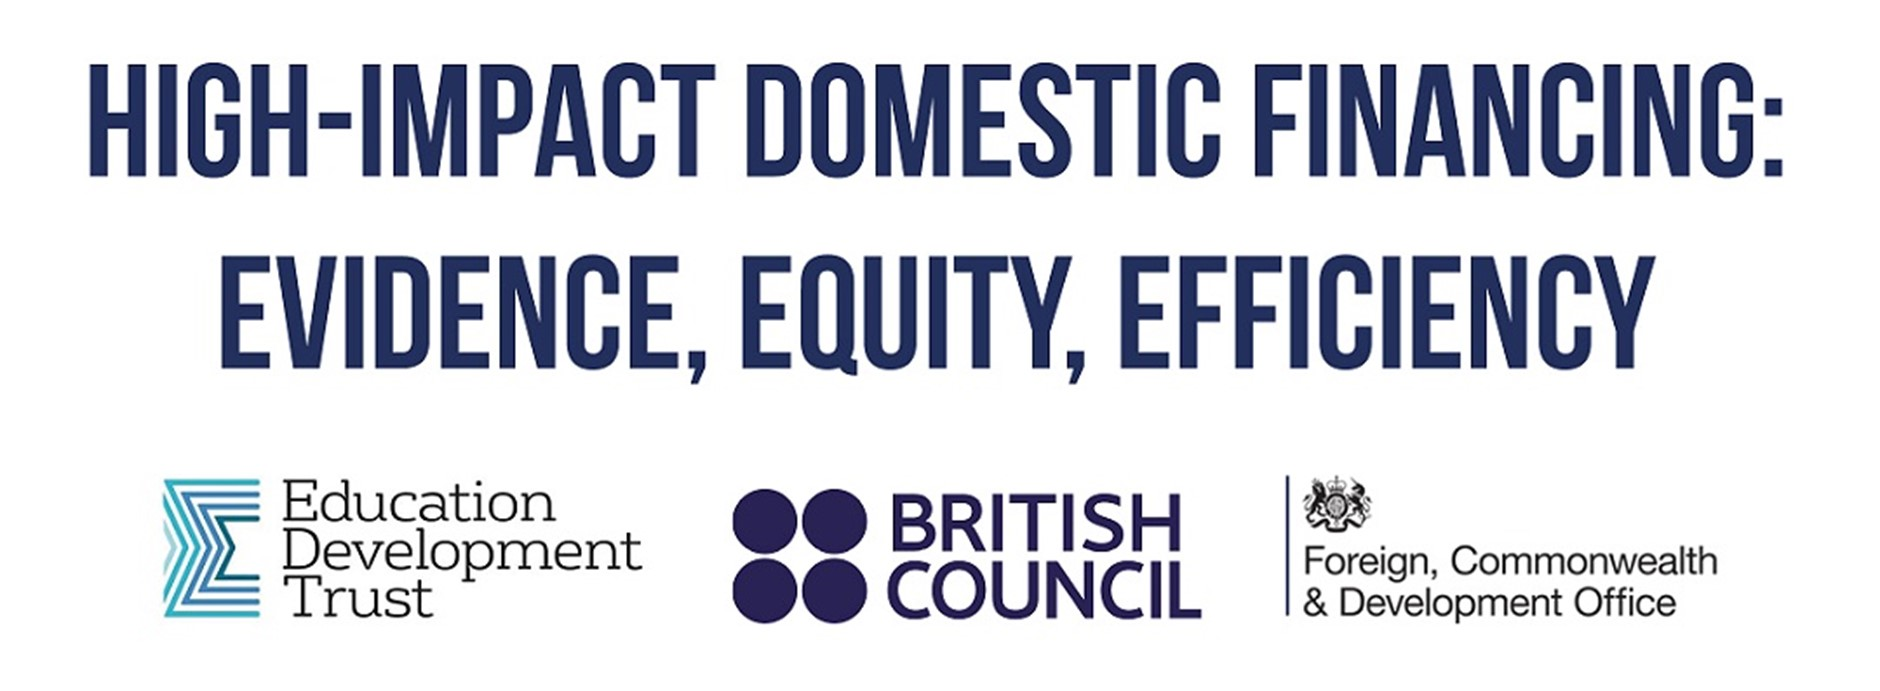 High-Impact Domestic Financing: Evidence, Equity, Efficiency